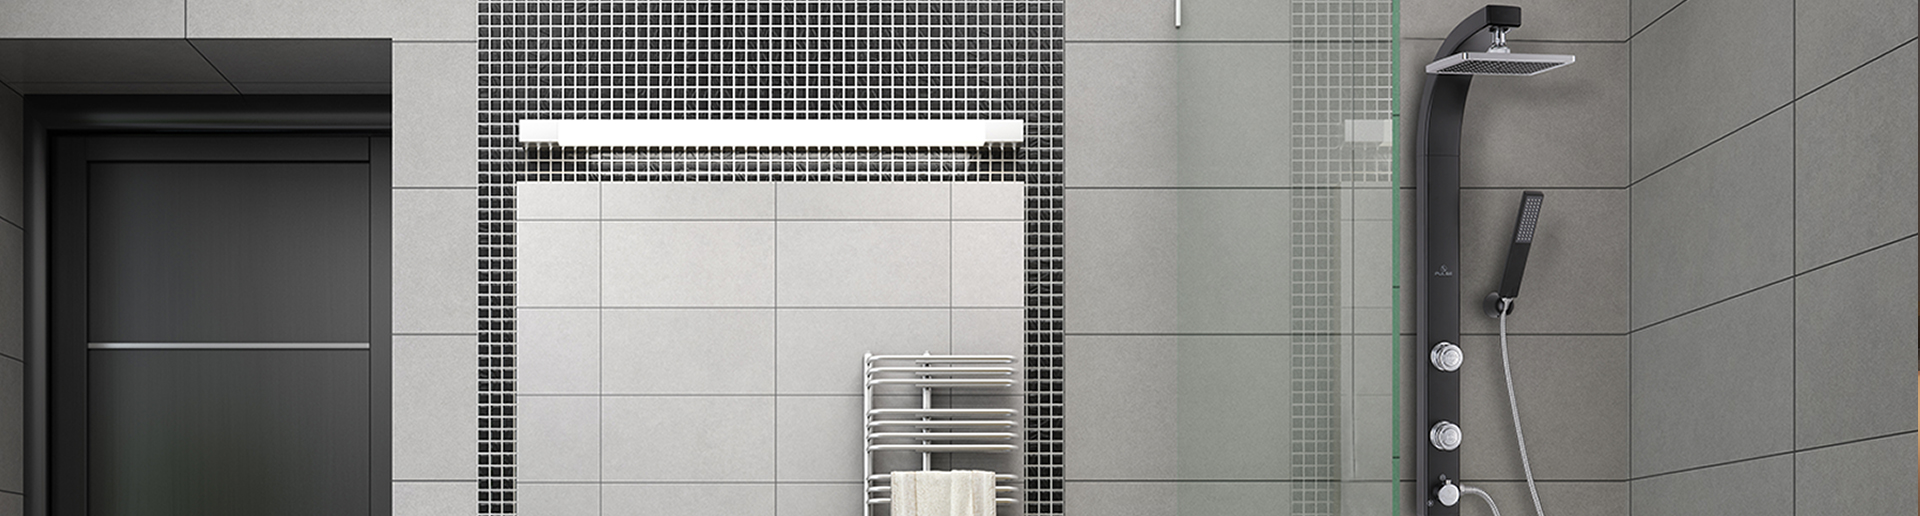 the splash rain shower system replaces your existing shower head in minutes